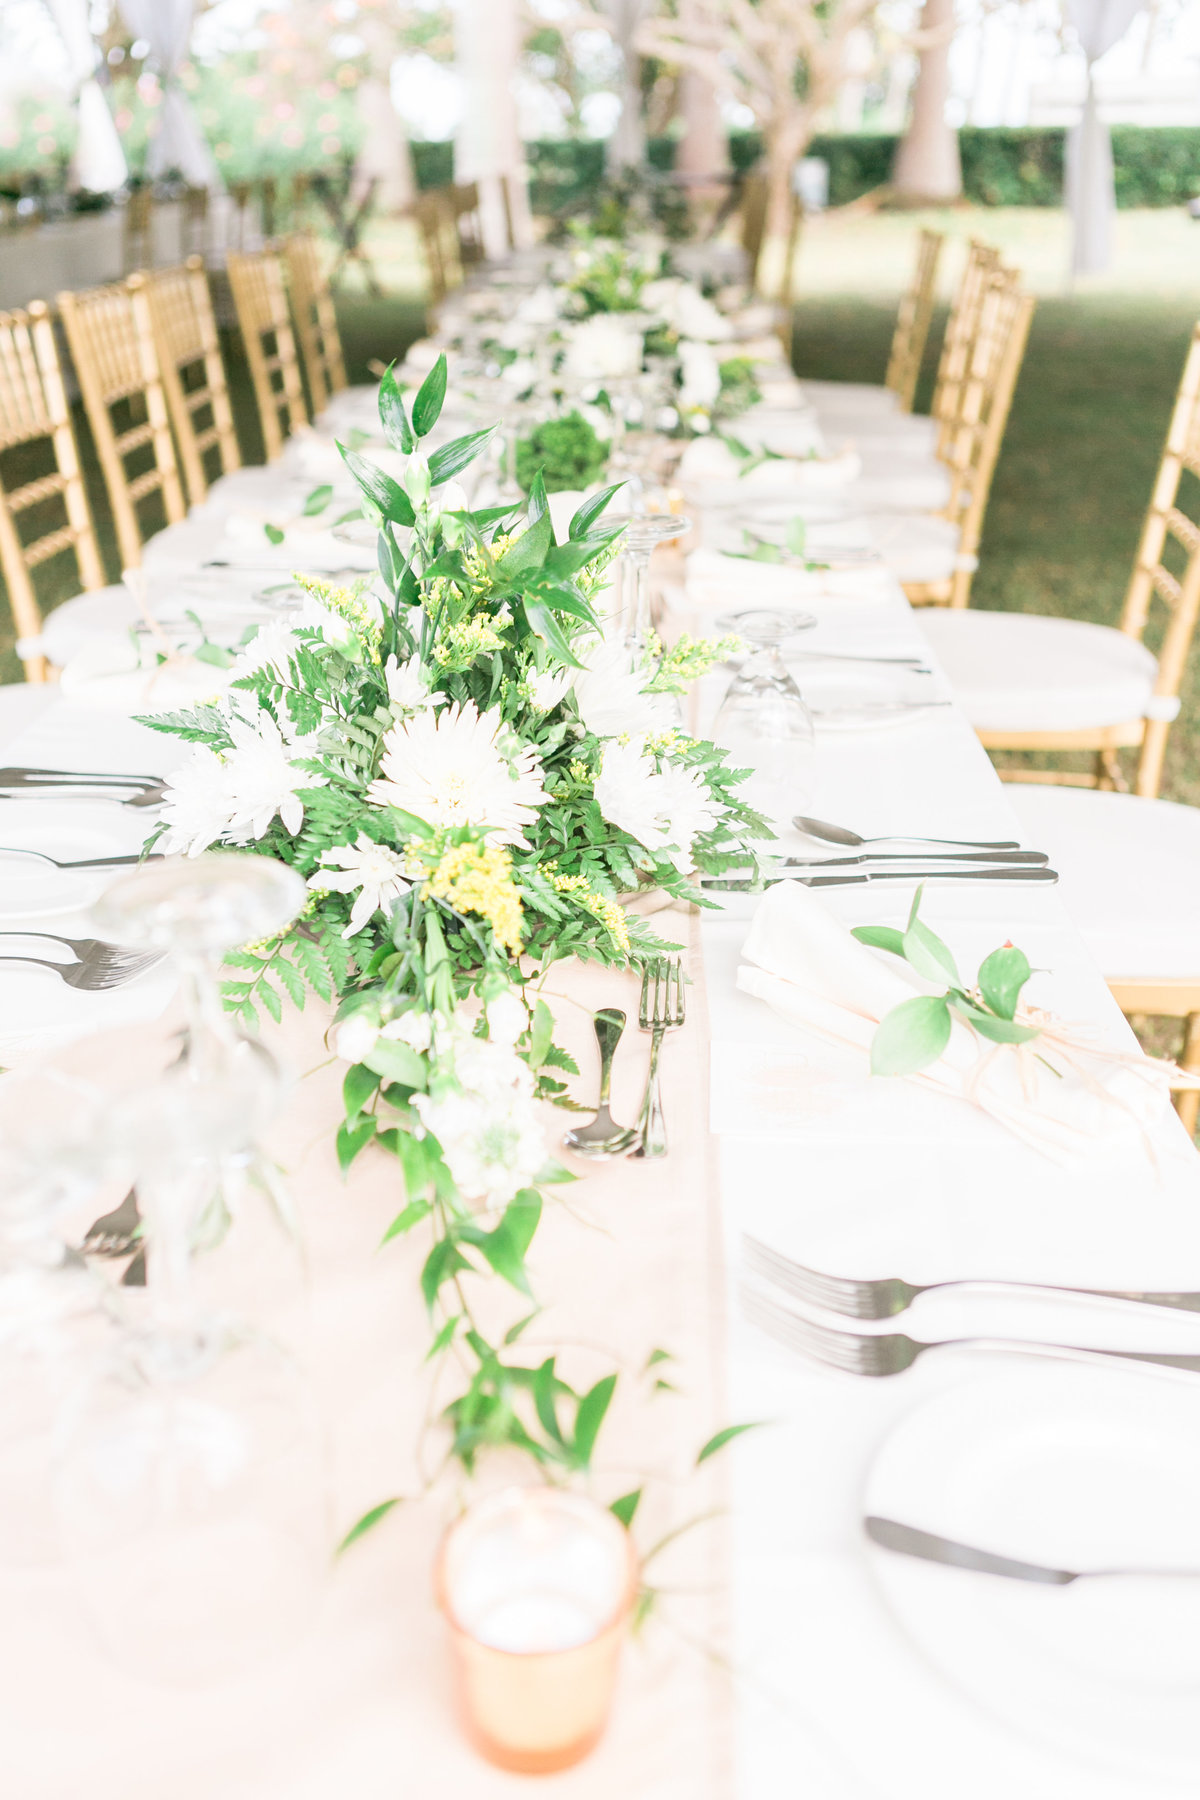 White and green wedding centerpieces at Barbados destination wedding